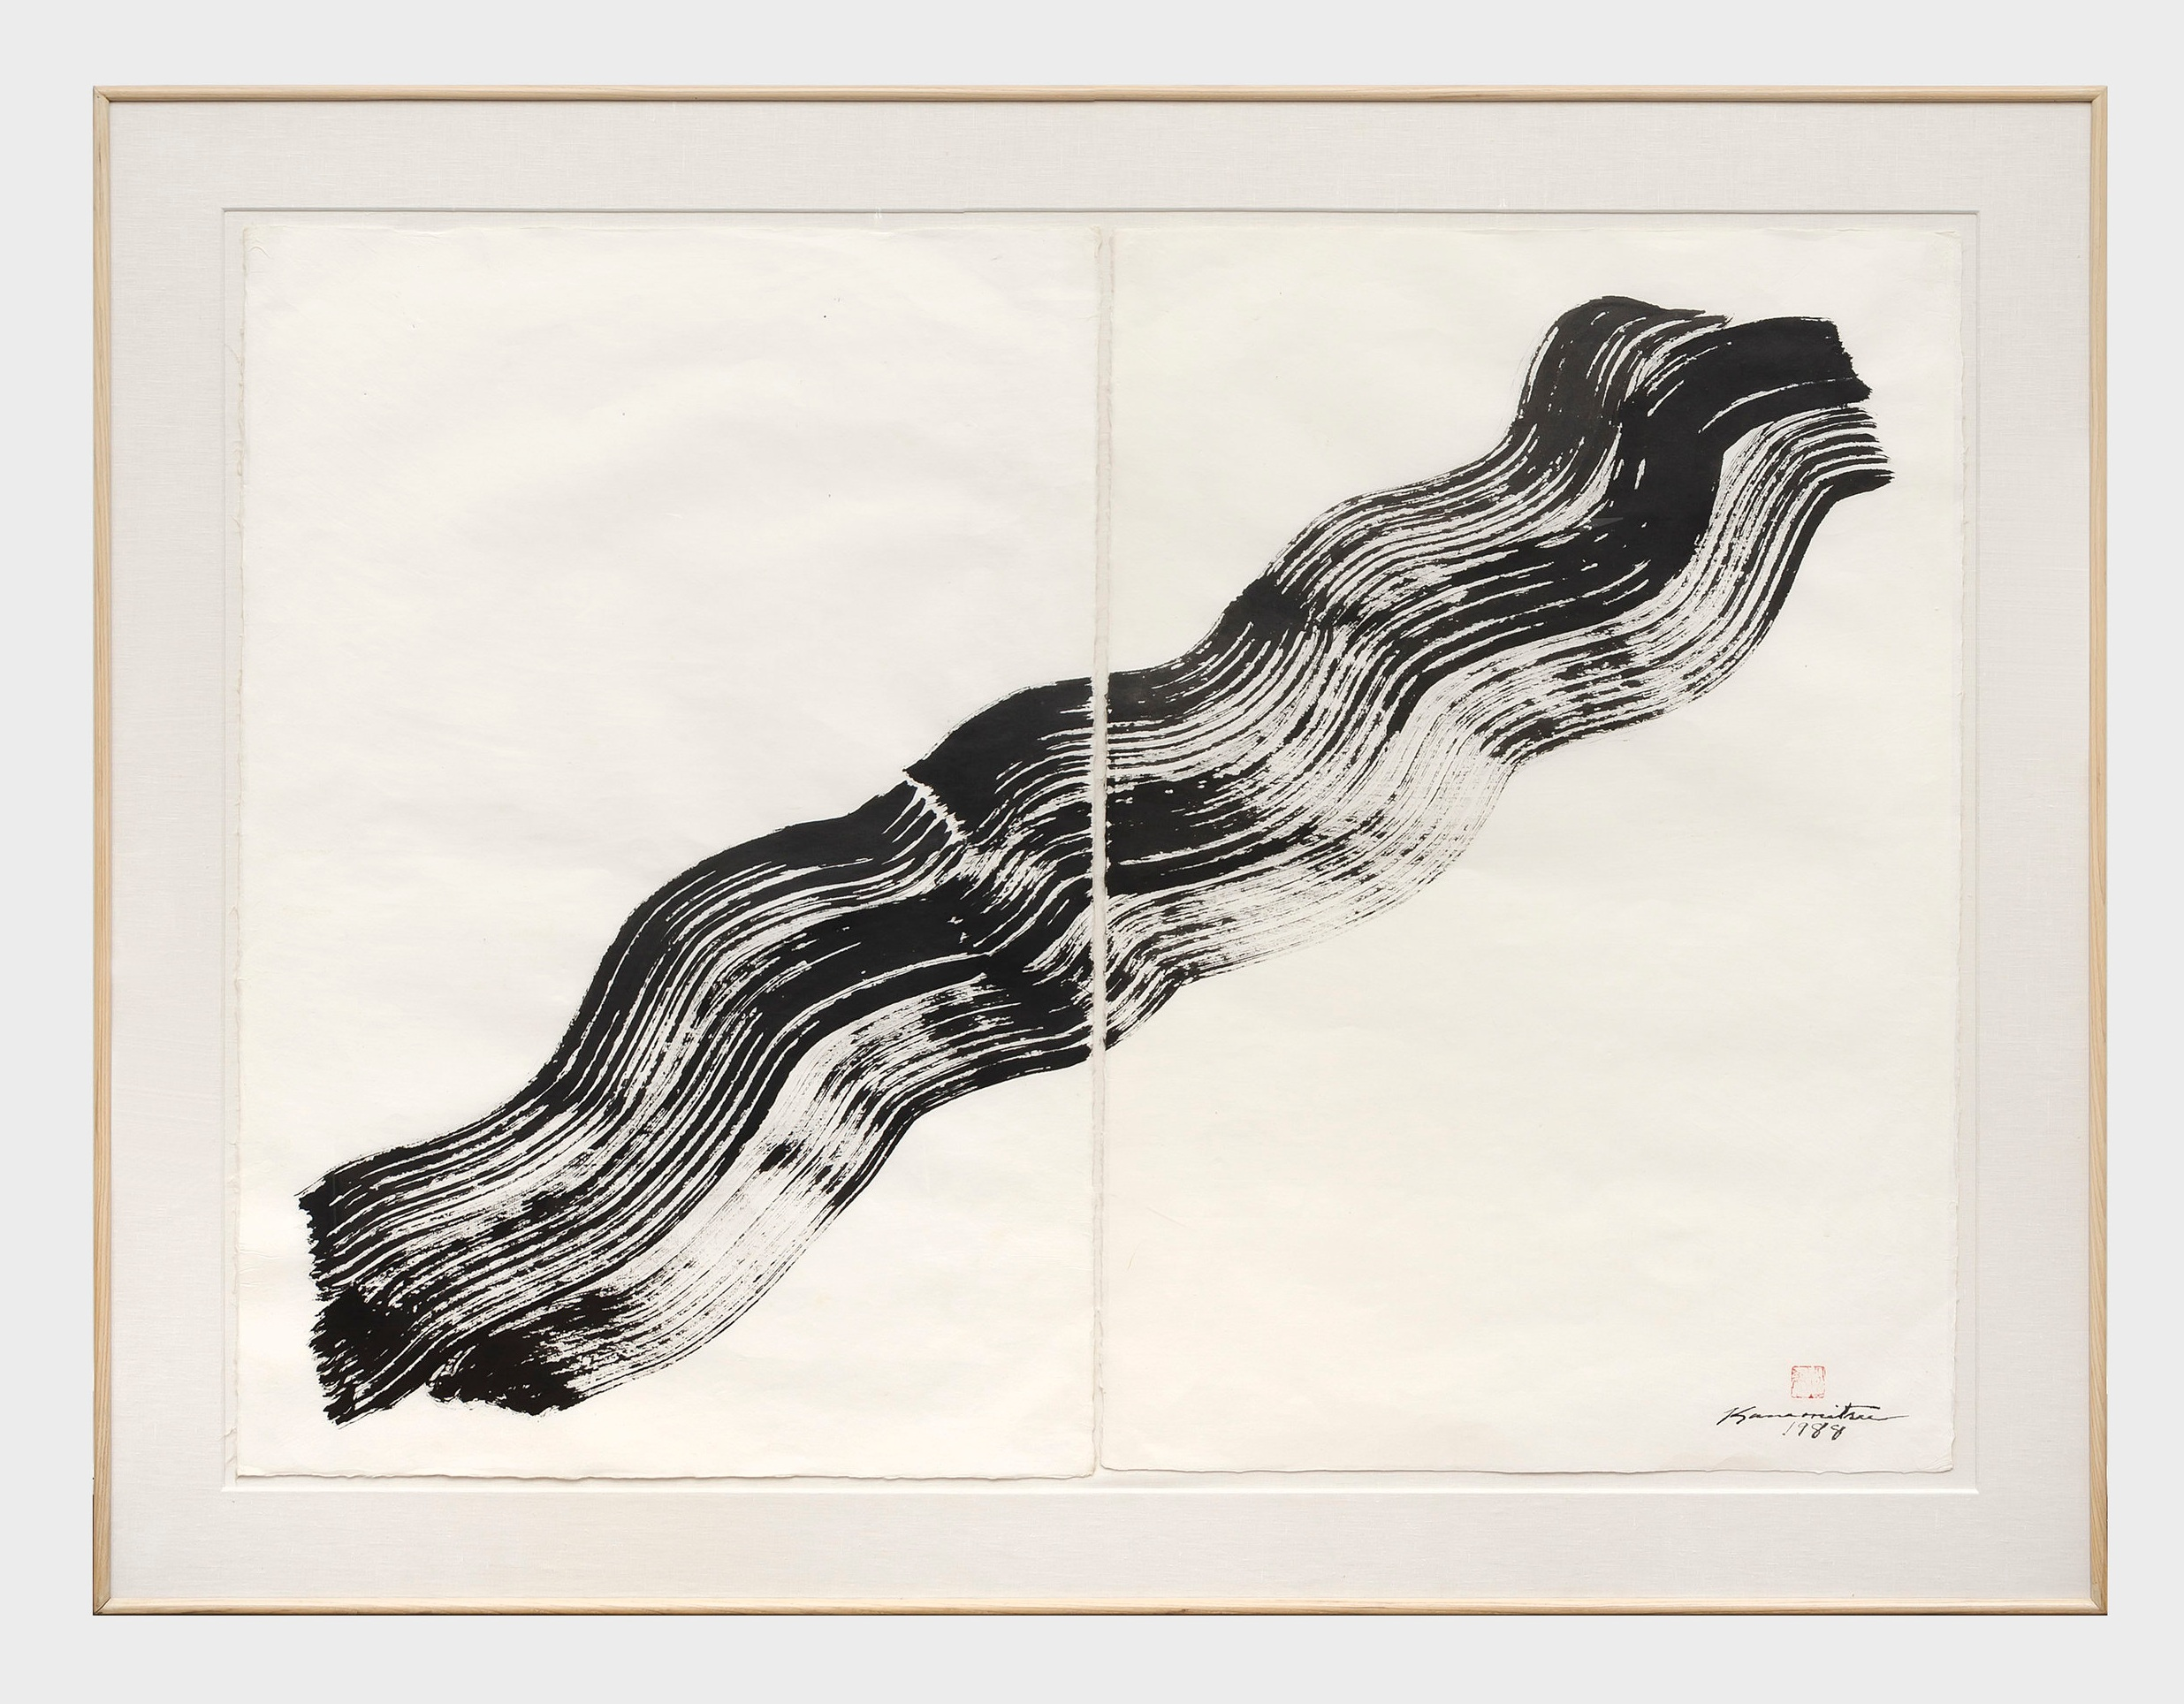 Nagare #4   1988  sumi on handmade Japanese paper  46 7/8 x 58 7/8 inches, 119.1 x 149.5 centimeters